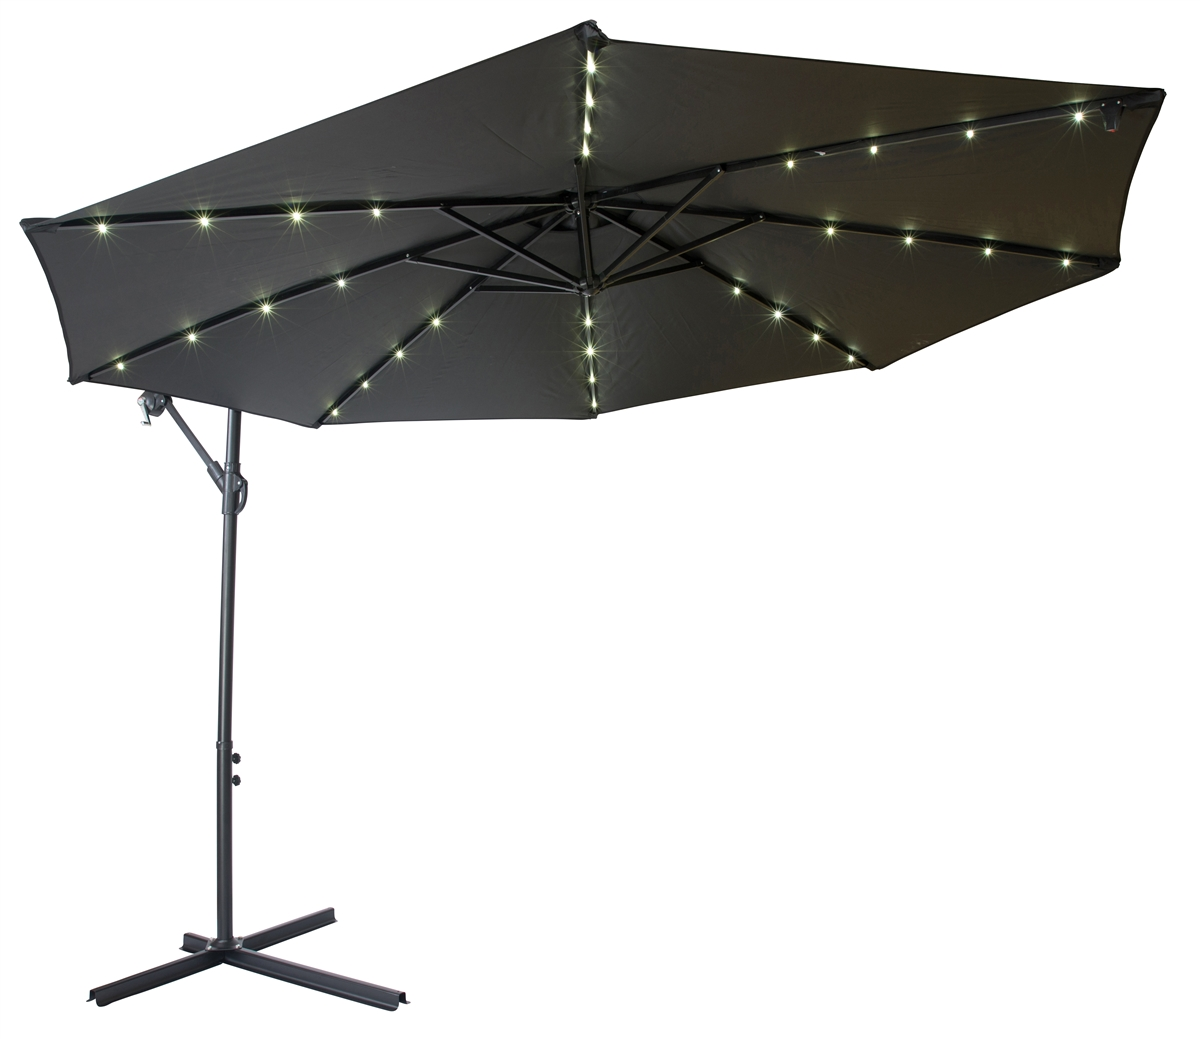 Genial 10u0027 Deluxe Polyester Offset Patio Umbrella With LED Lights By Trademark  Innovations (Black)